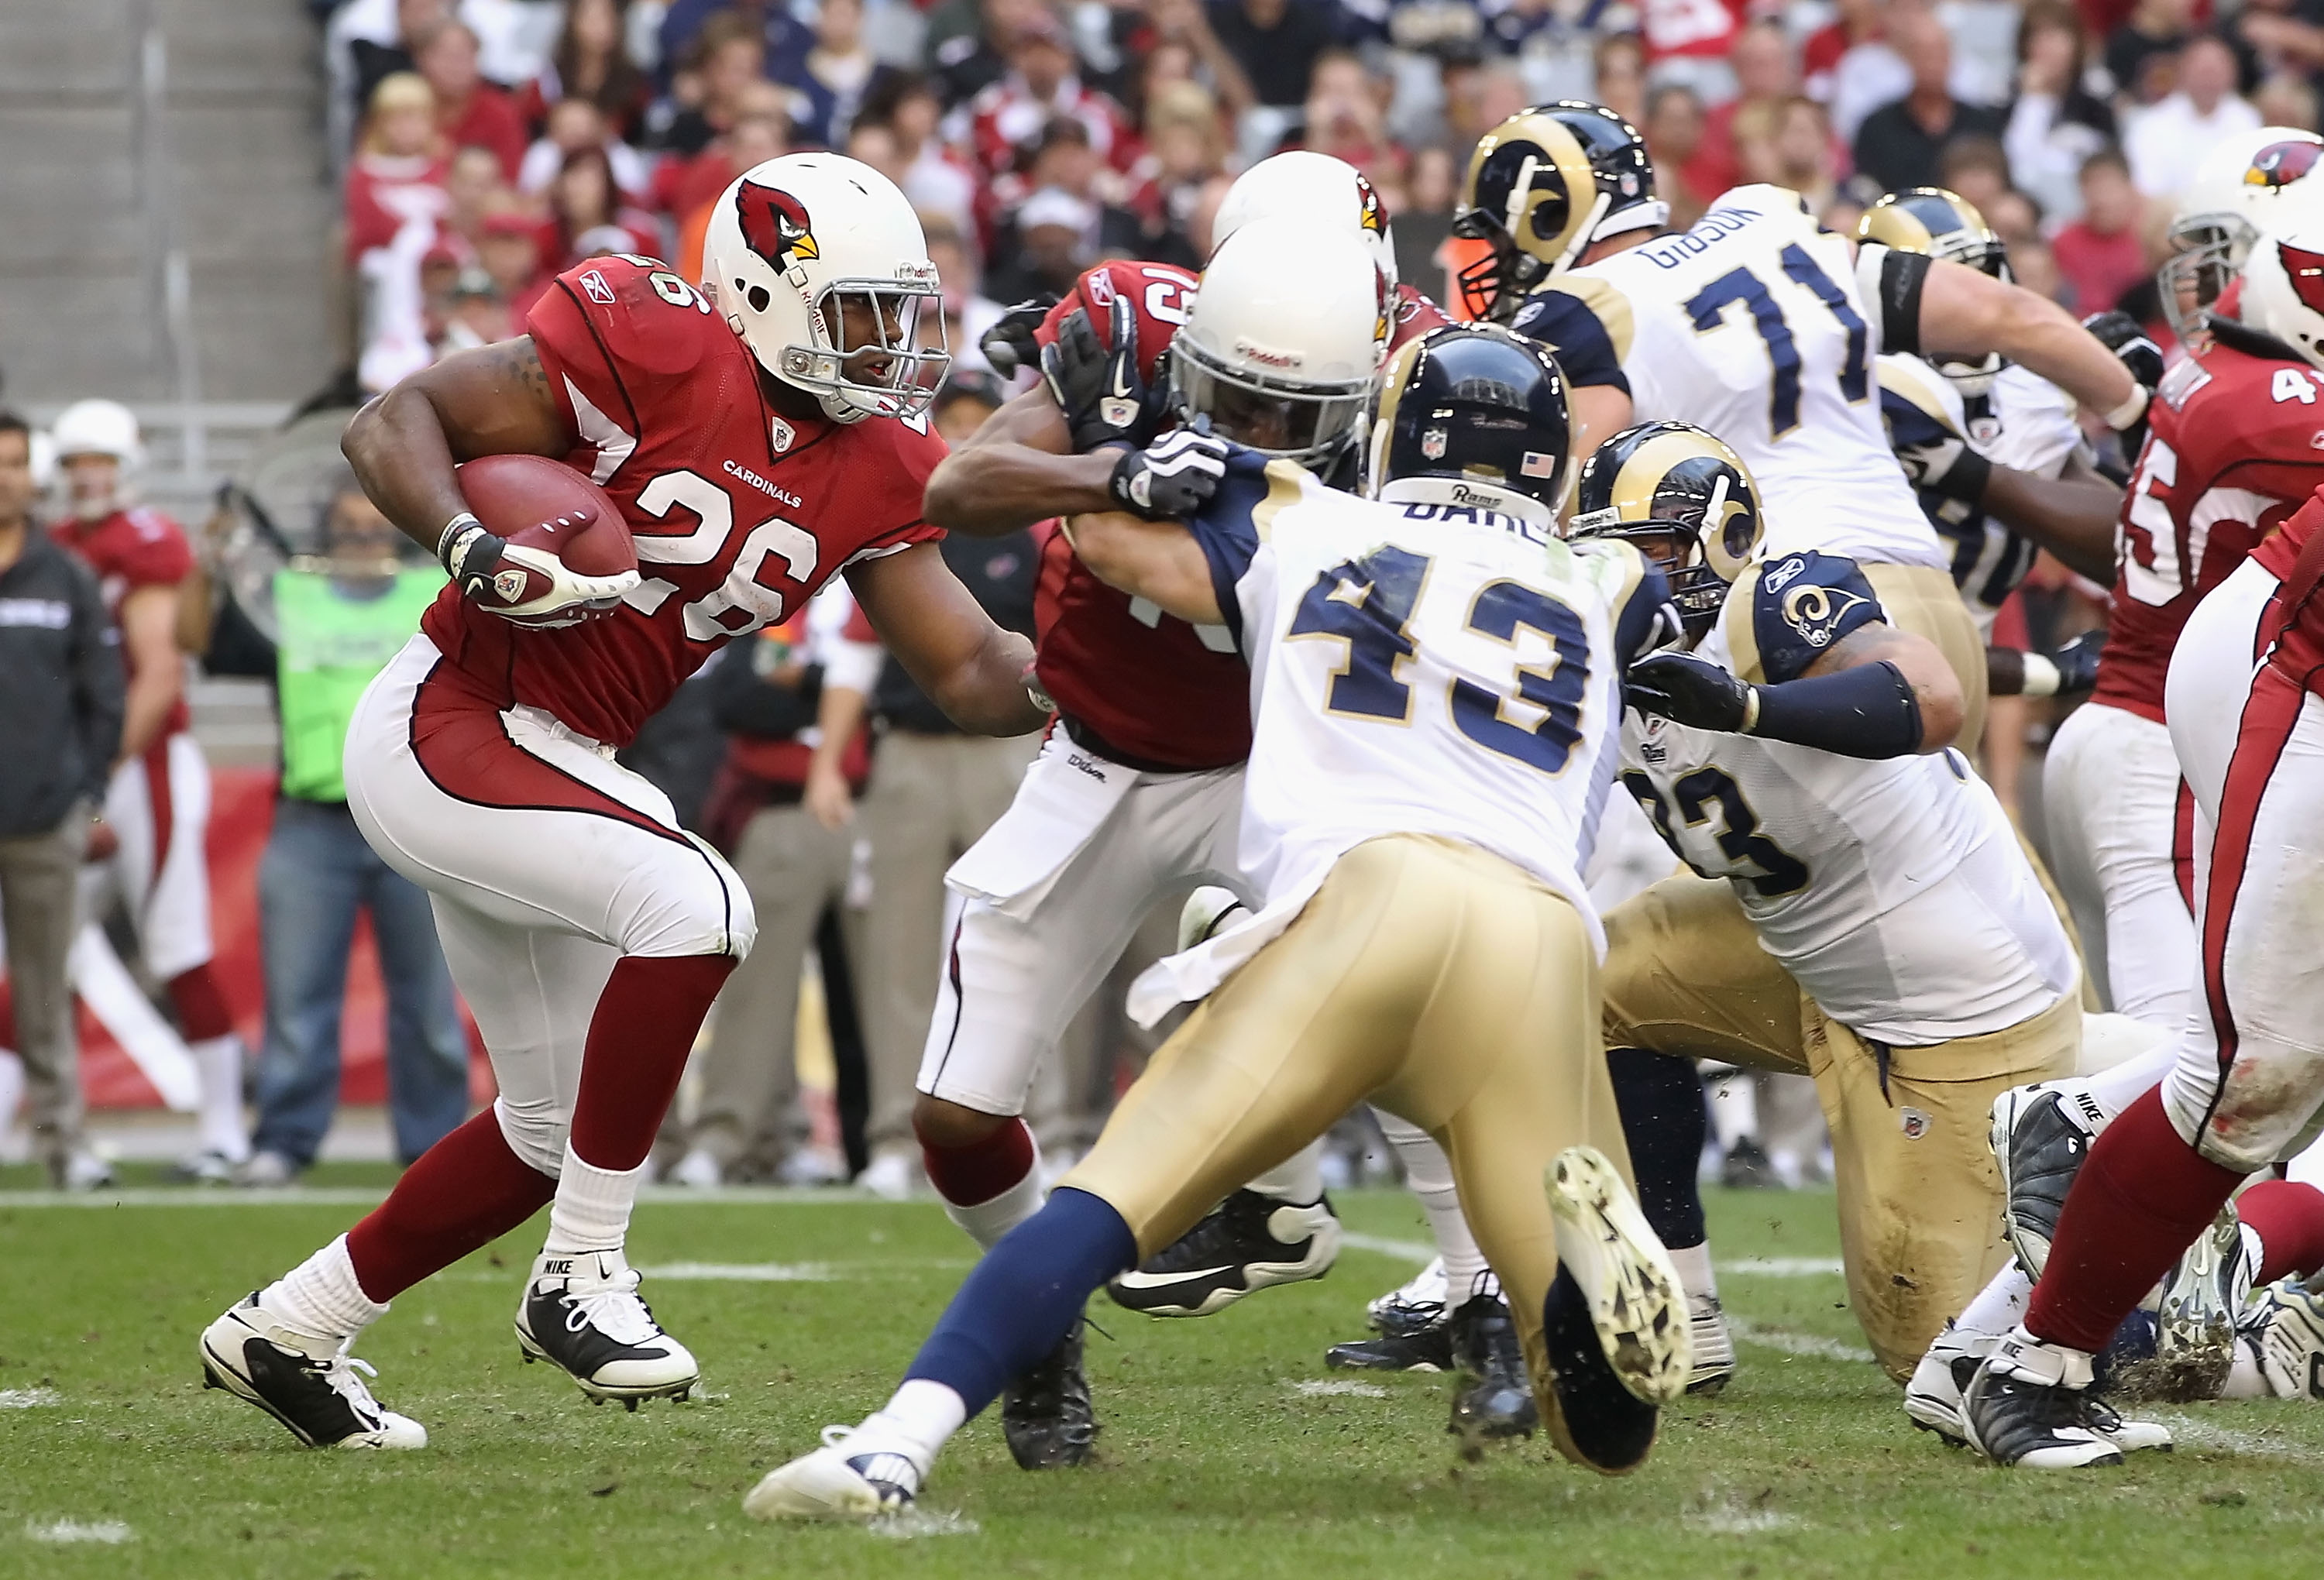 GLENDALE, AZ - DECEMBER 05:  Runningback Beanie Wells #26 of the Arizona Cardinals rushes the football during the NFL game against the St. Louis Rams at the University of Phoenix Stadium on December 5, 2010 in Glendale, Arizona.  The Rams defeated the Car